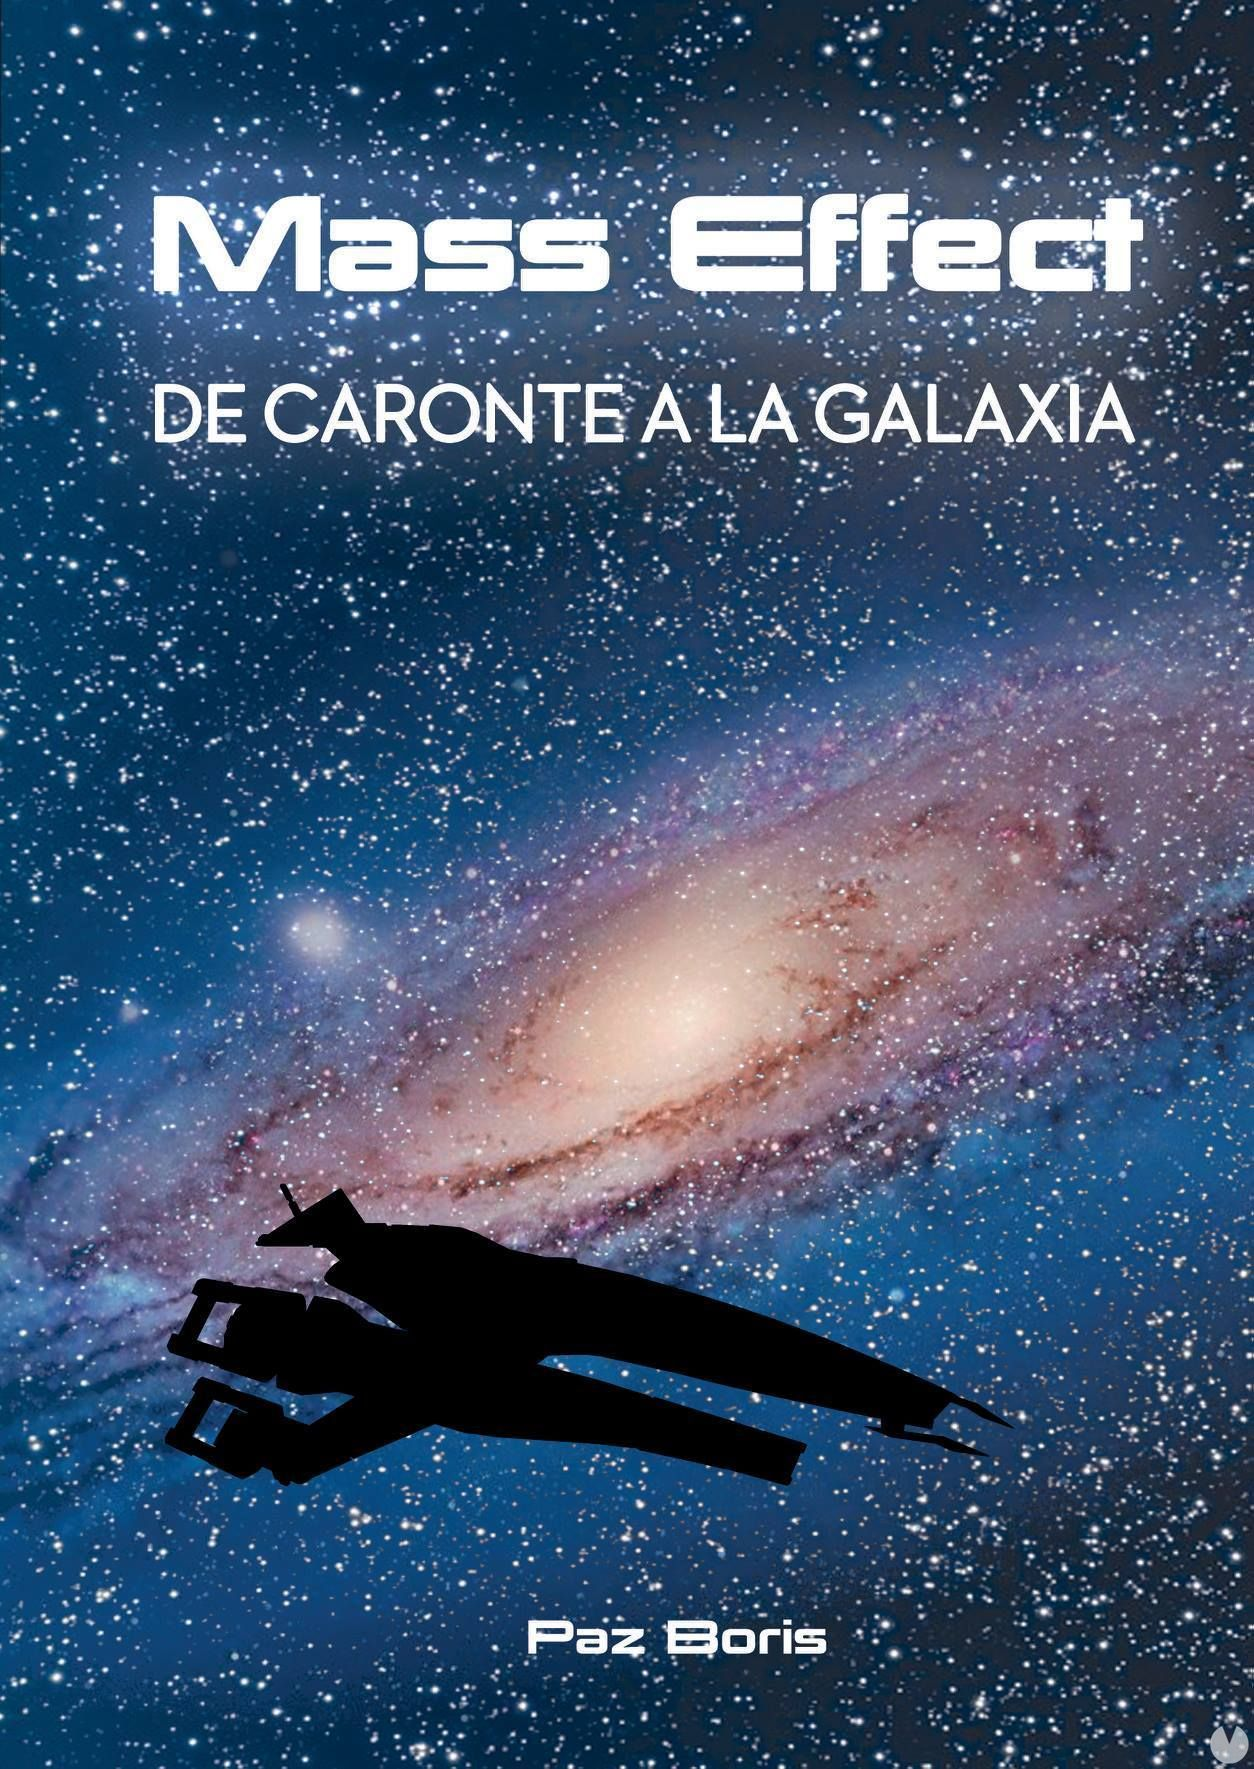 announcing the book 'Mass Effect: Of Charon to the galaxy'